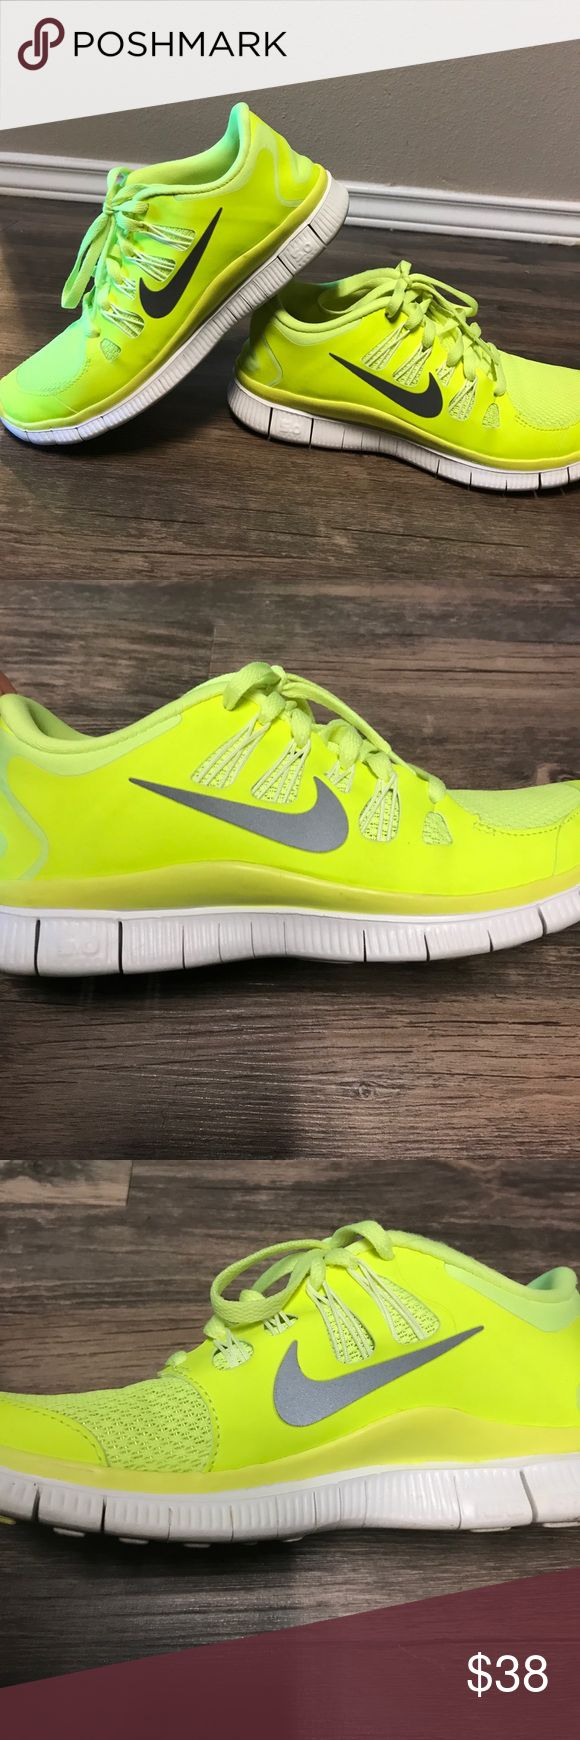 Perfect 40 Off Nike Shoes  Neon LowTop Nikes Women39s 12 Men39s 105 From